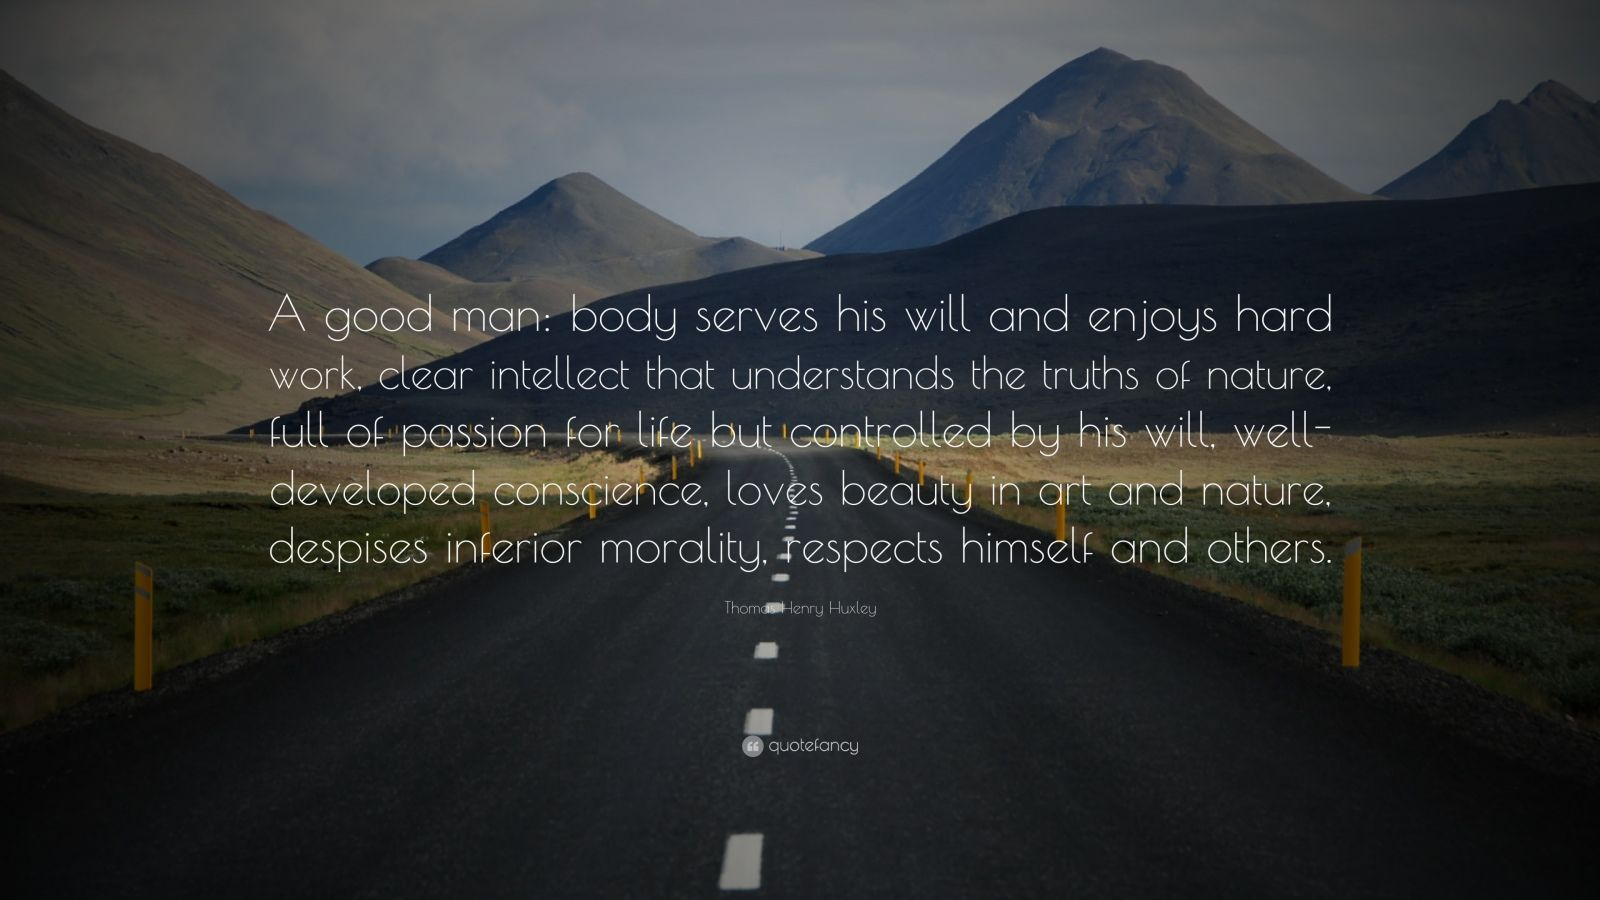 """Thomas Henry Huxley Quote: """"A good man: body serves his will and enjoys hard work, clear intellect that understands the truths of nature, full of passion for life but controlled by his will, well-developed conscience, loves beauty in art and nature, despises inferior morality, respects himself and others."""""""